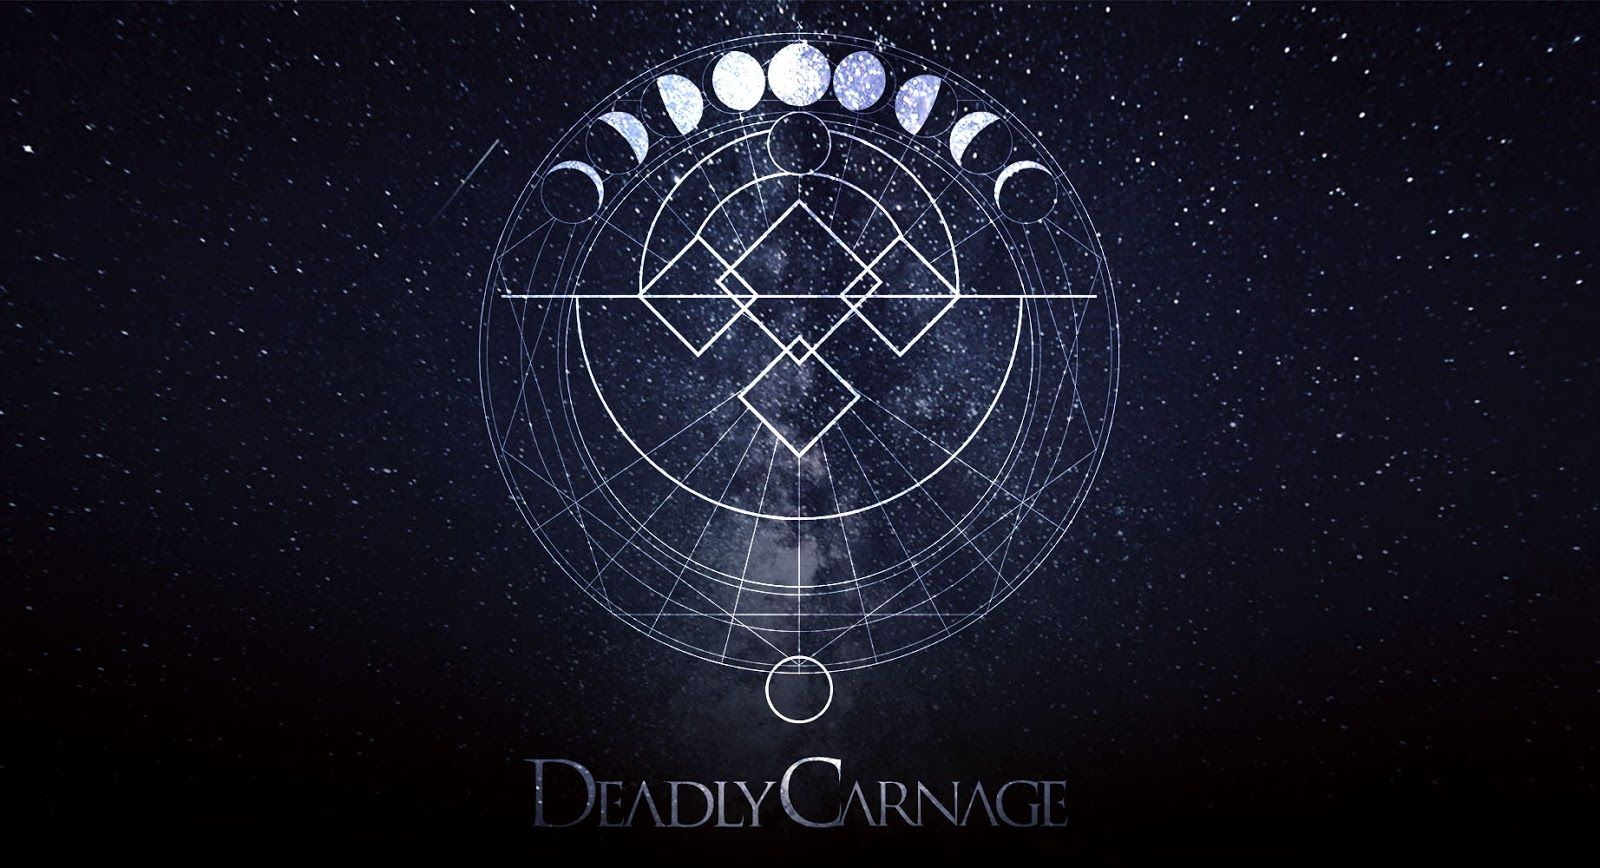 Symbol For Deadly Carnage Lunar Diagram This Is A Phases Symbolic Representation Each Phase Whole Year Of Activity The Band